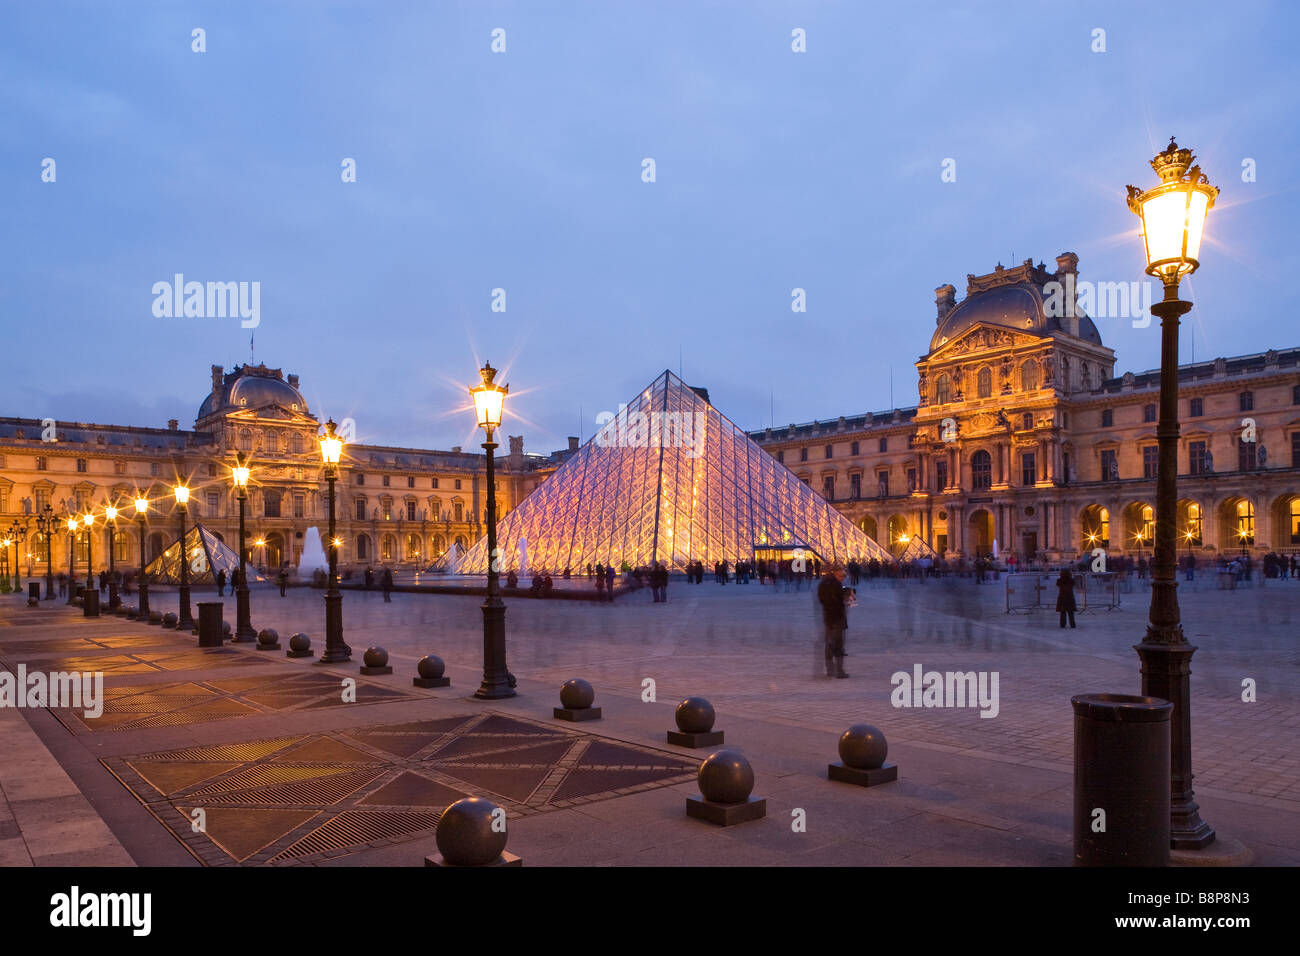 The Louvre Museum illuminated glass pyramid entrance Paris France - Stock Image